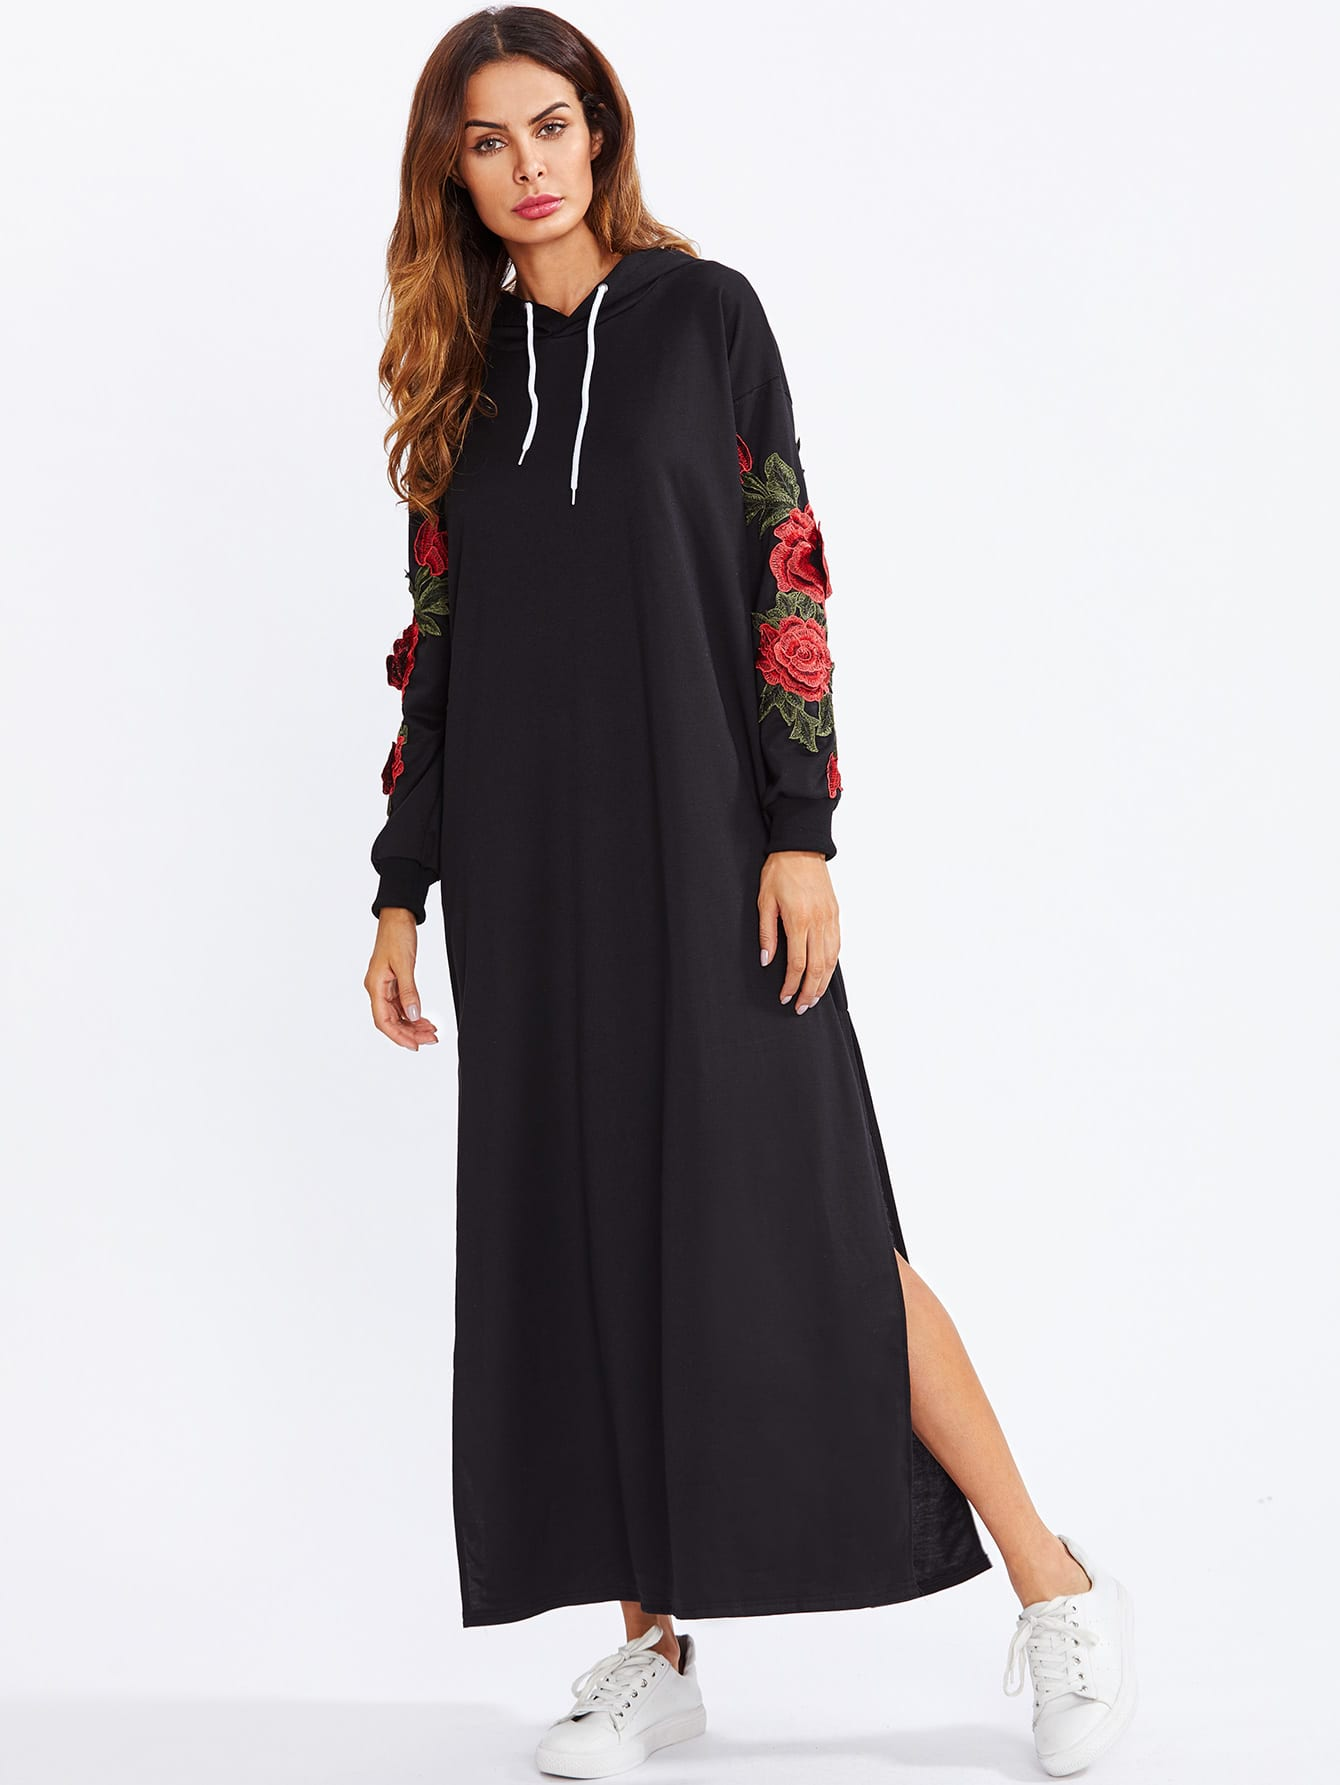 Split Side Applique Hooded Dress split side embroidered applique dress